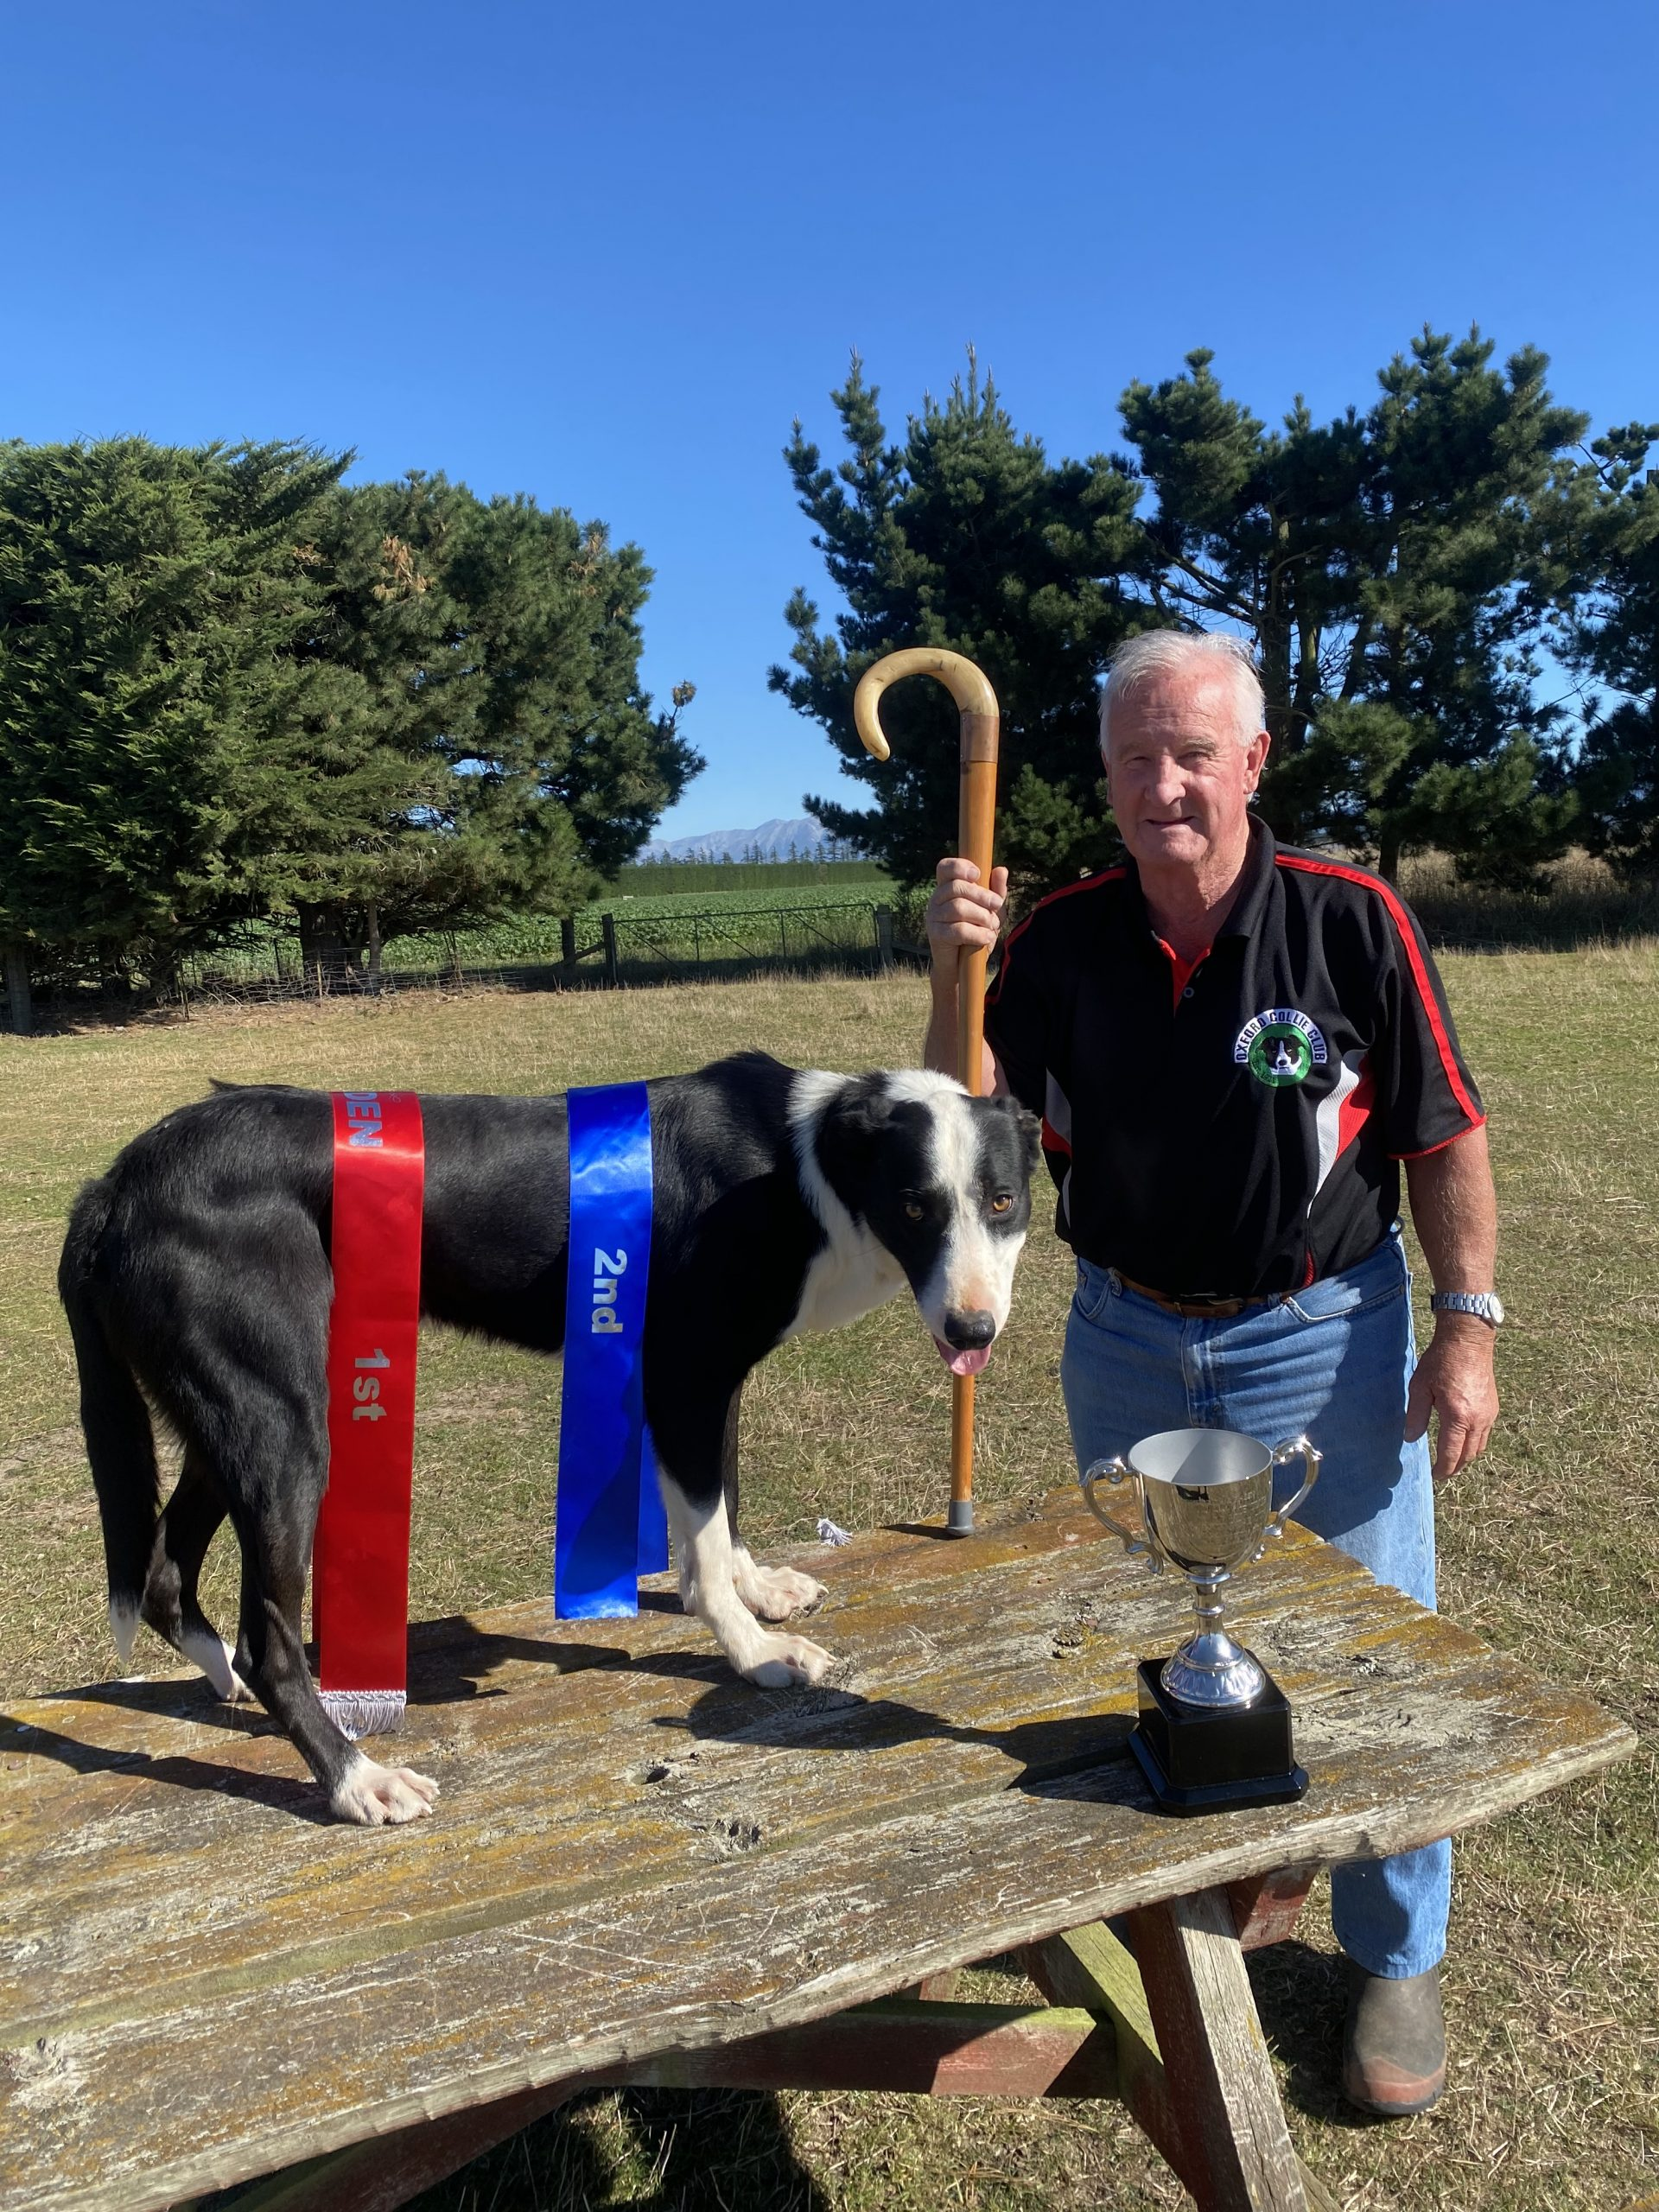 Gavin Frahm was thrilled with the efforts of his dog Winn, which enjoyed success at its first...